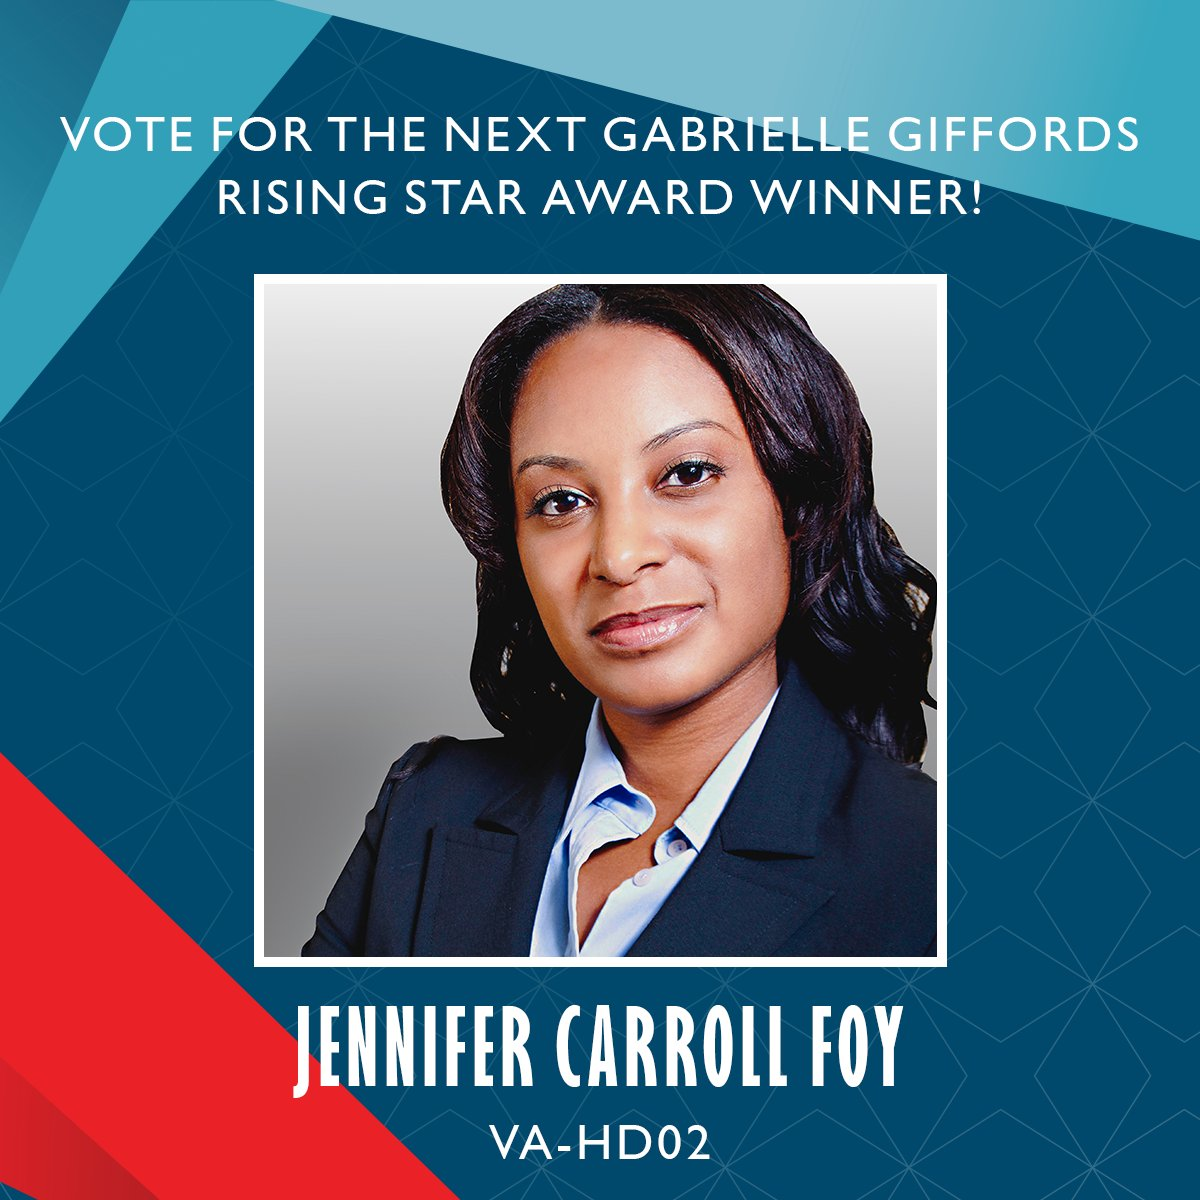 I'm so proud to share that I've been nominated for @emilyslist's Gabrielle Giffords Rising Star Award! Please vote to let @emilyslist know if you think I should be this year's honoree!  https://secure.emilyslist.org/page/s/20190211_website_RisingStarVoteFoy?&source=WRSOJ204_digital_social_20190211_RisingStarFoy…